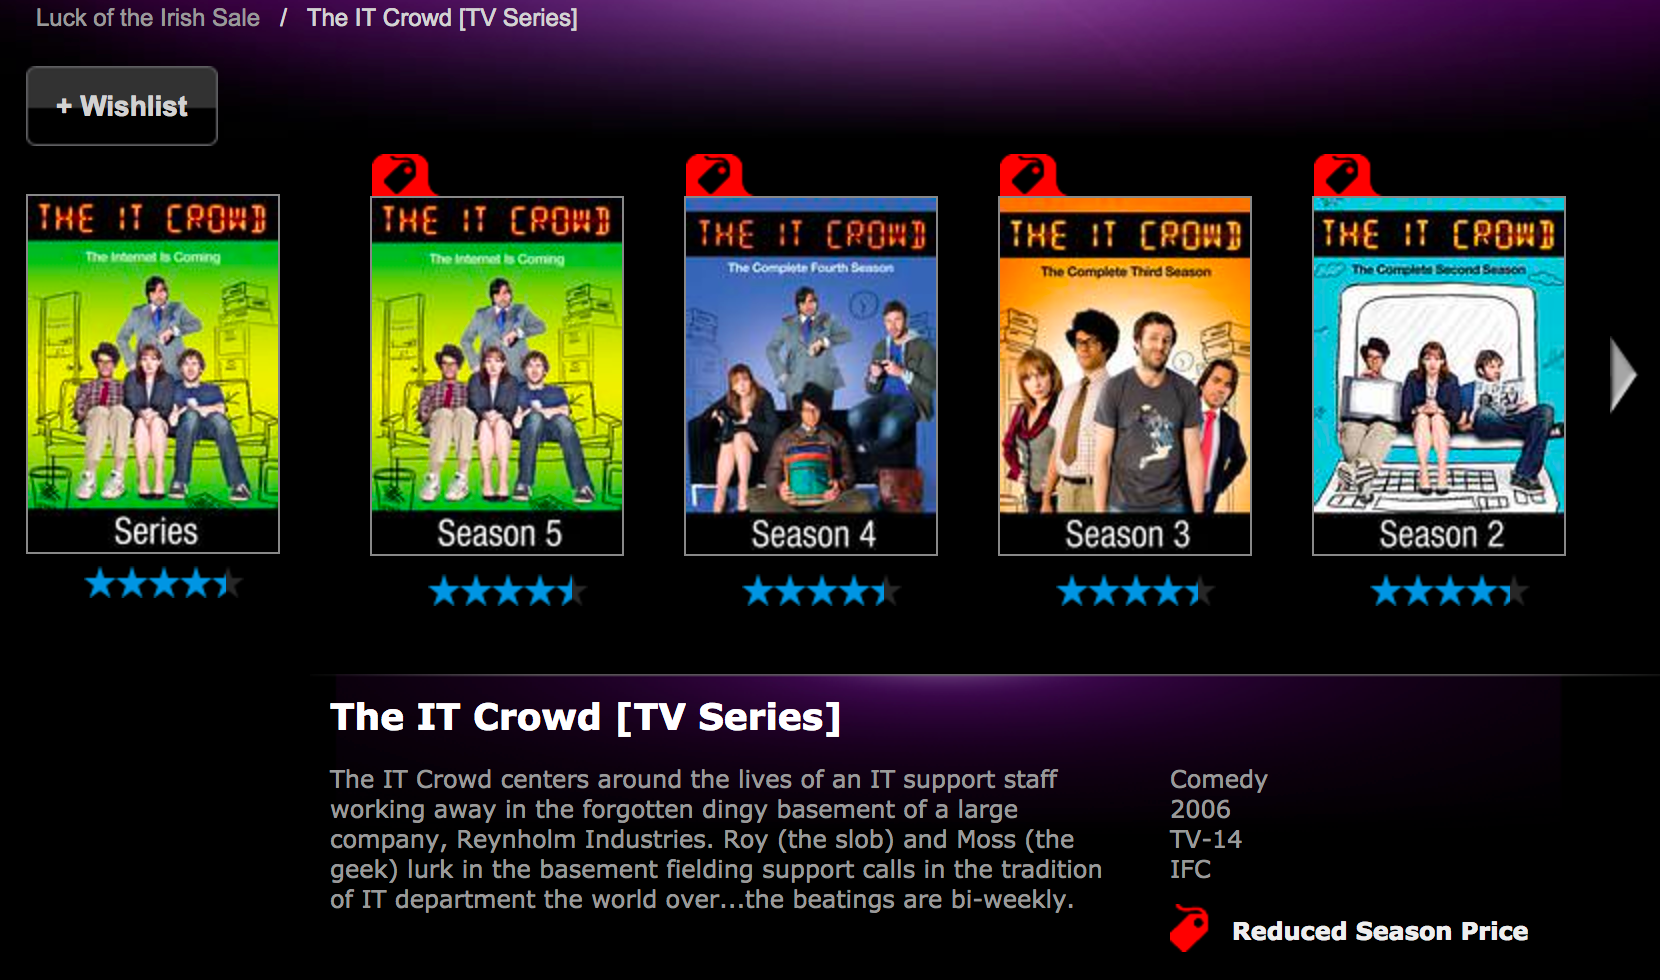 VUDU is offering 50% off select movies and TV shows: The IT Crowd